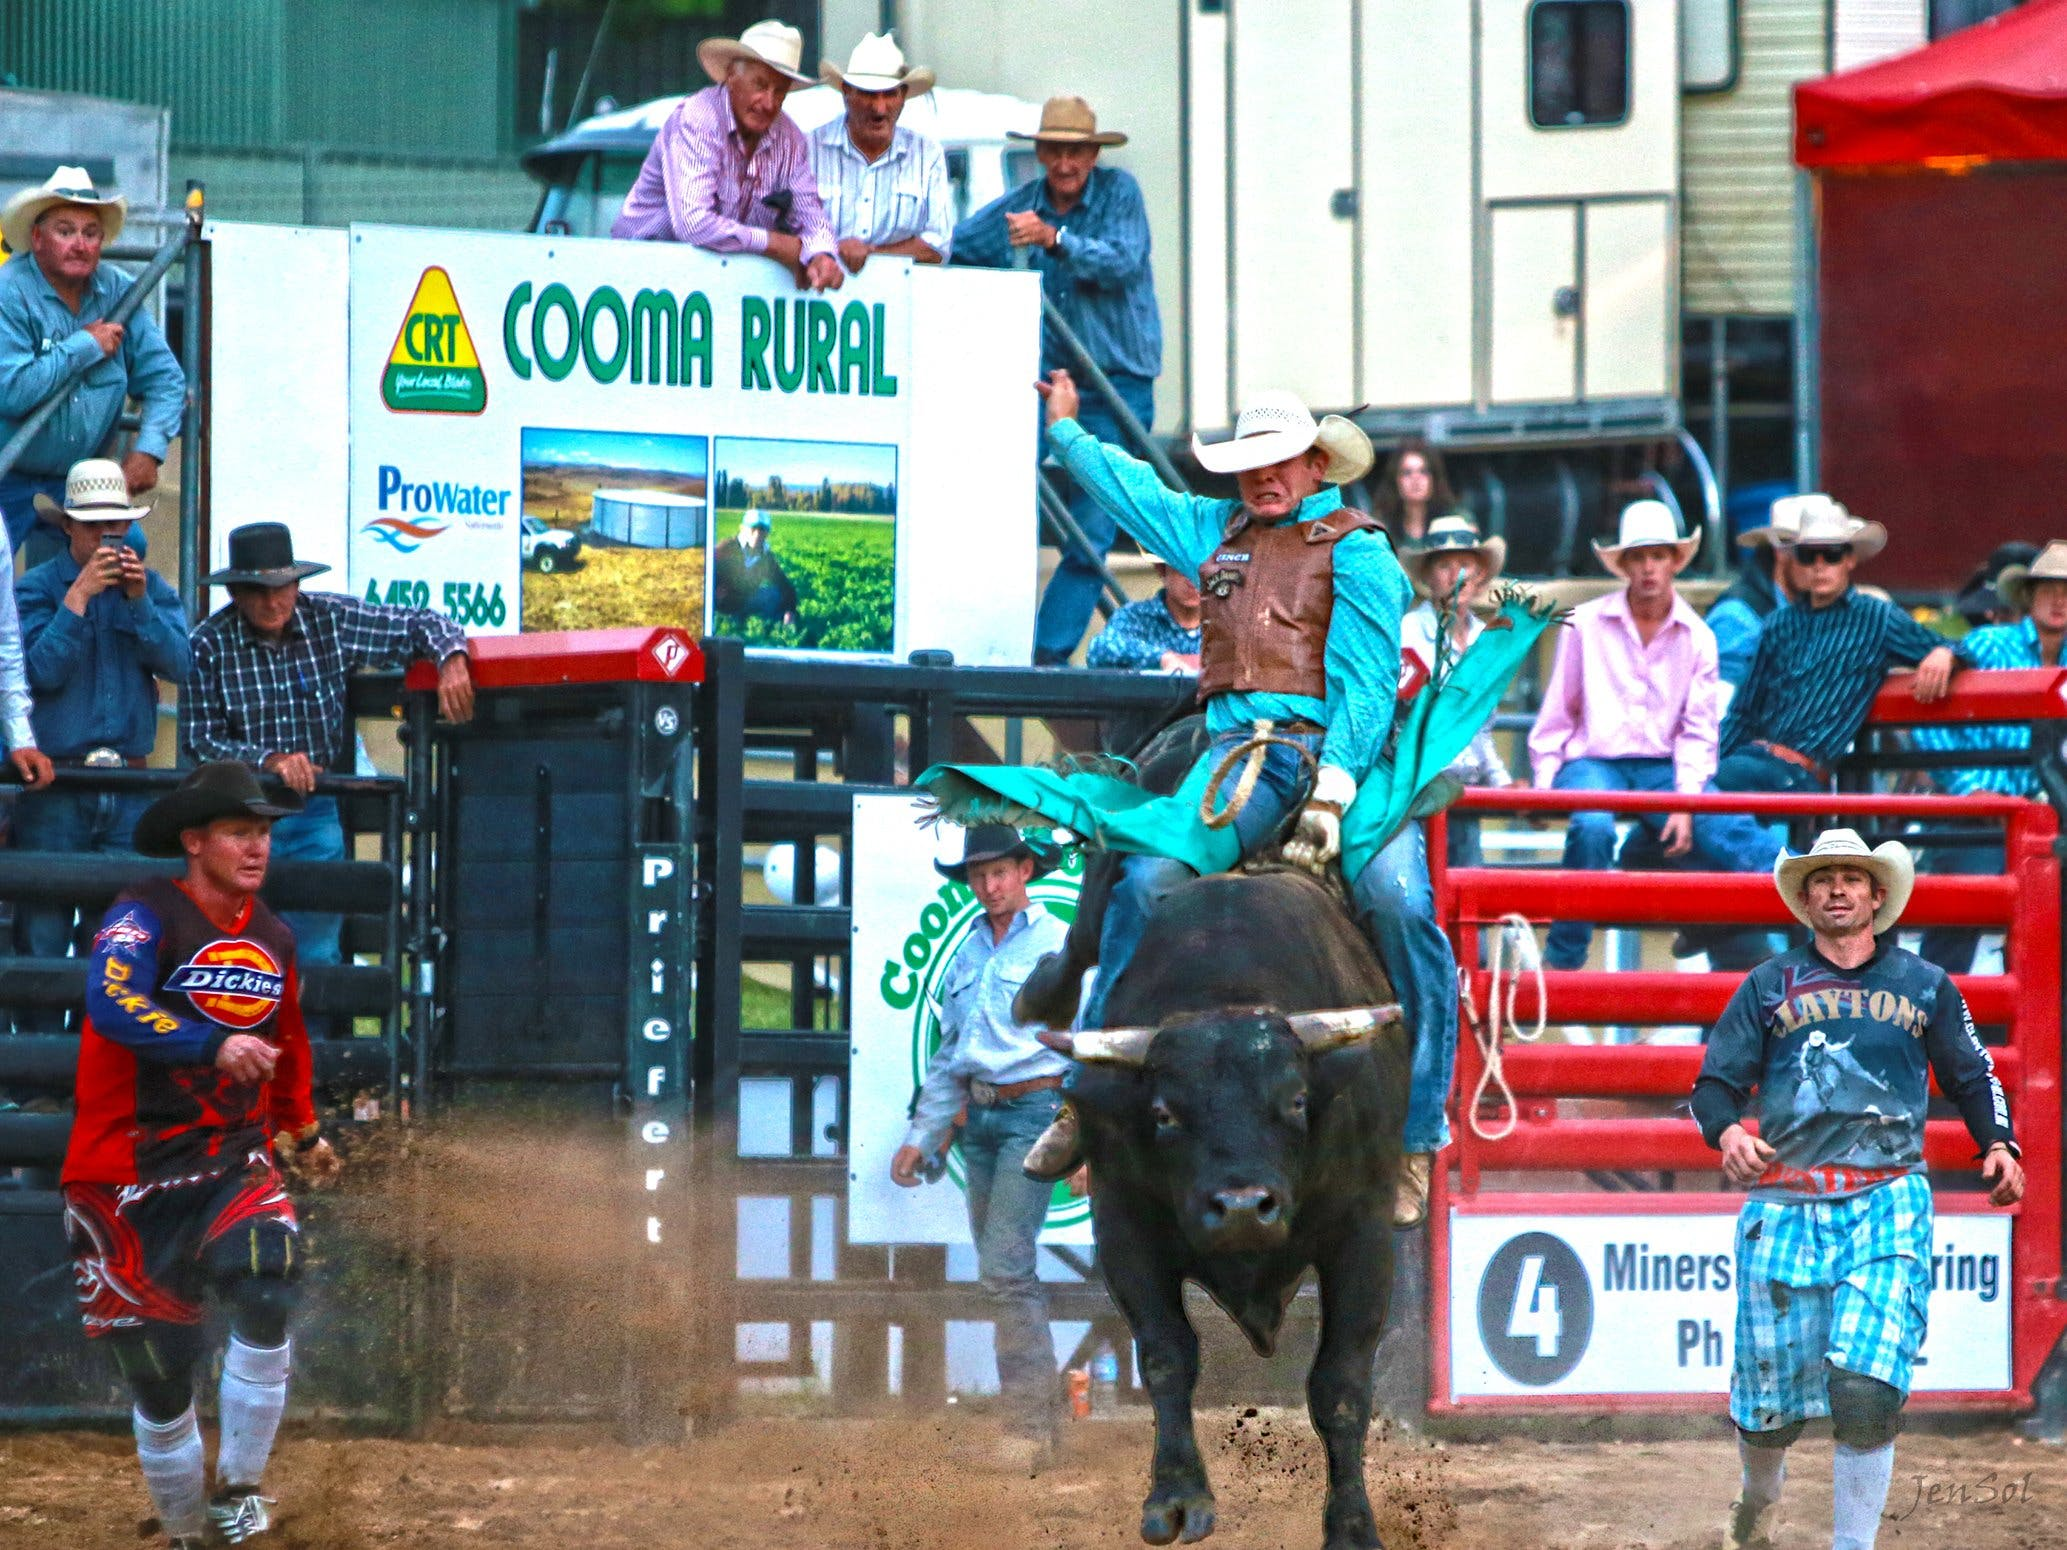 AgriWest Cooma Rodeo - Tourism Cairns